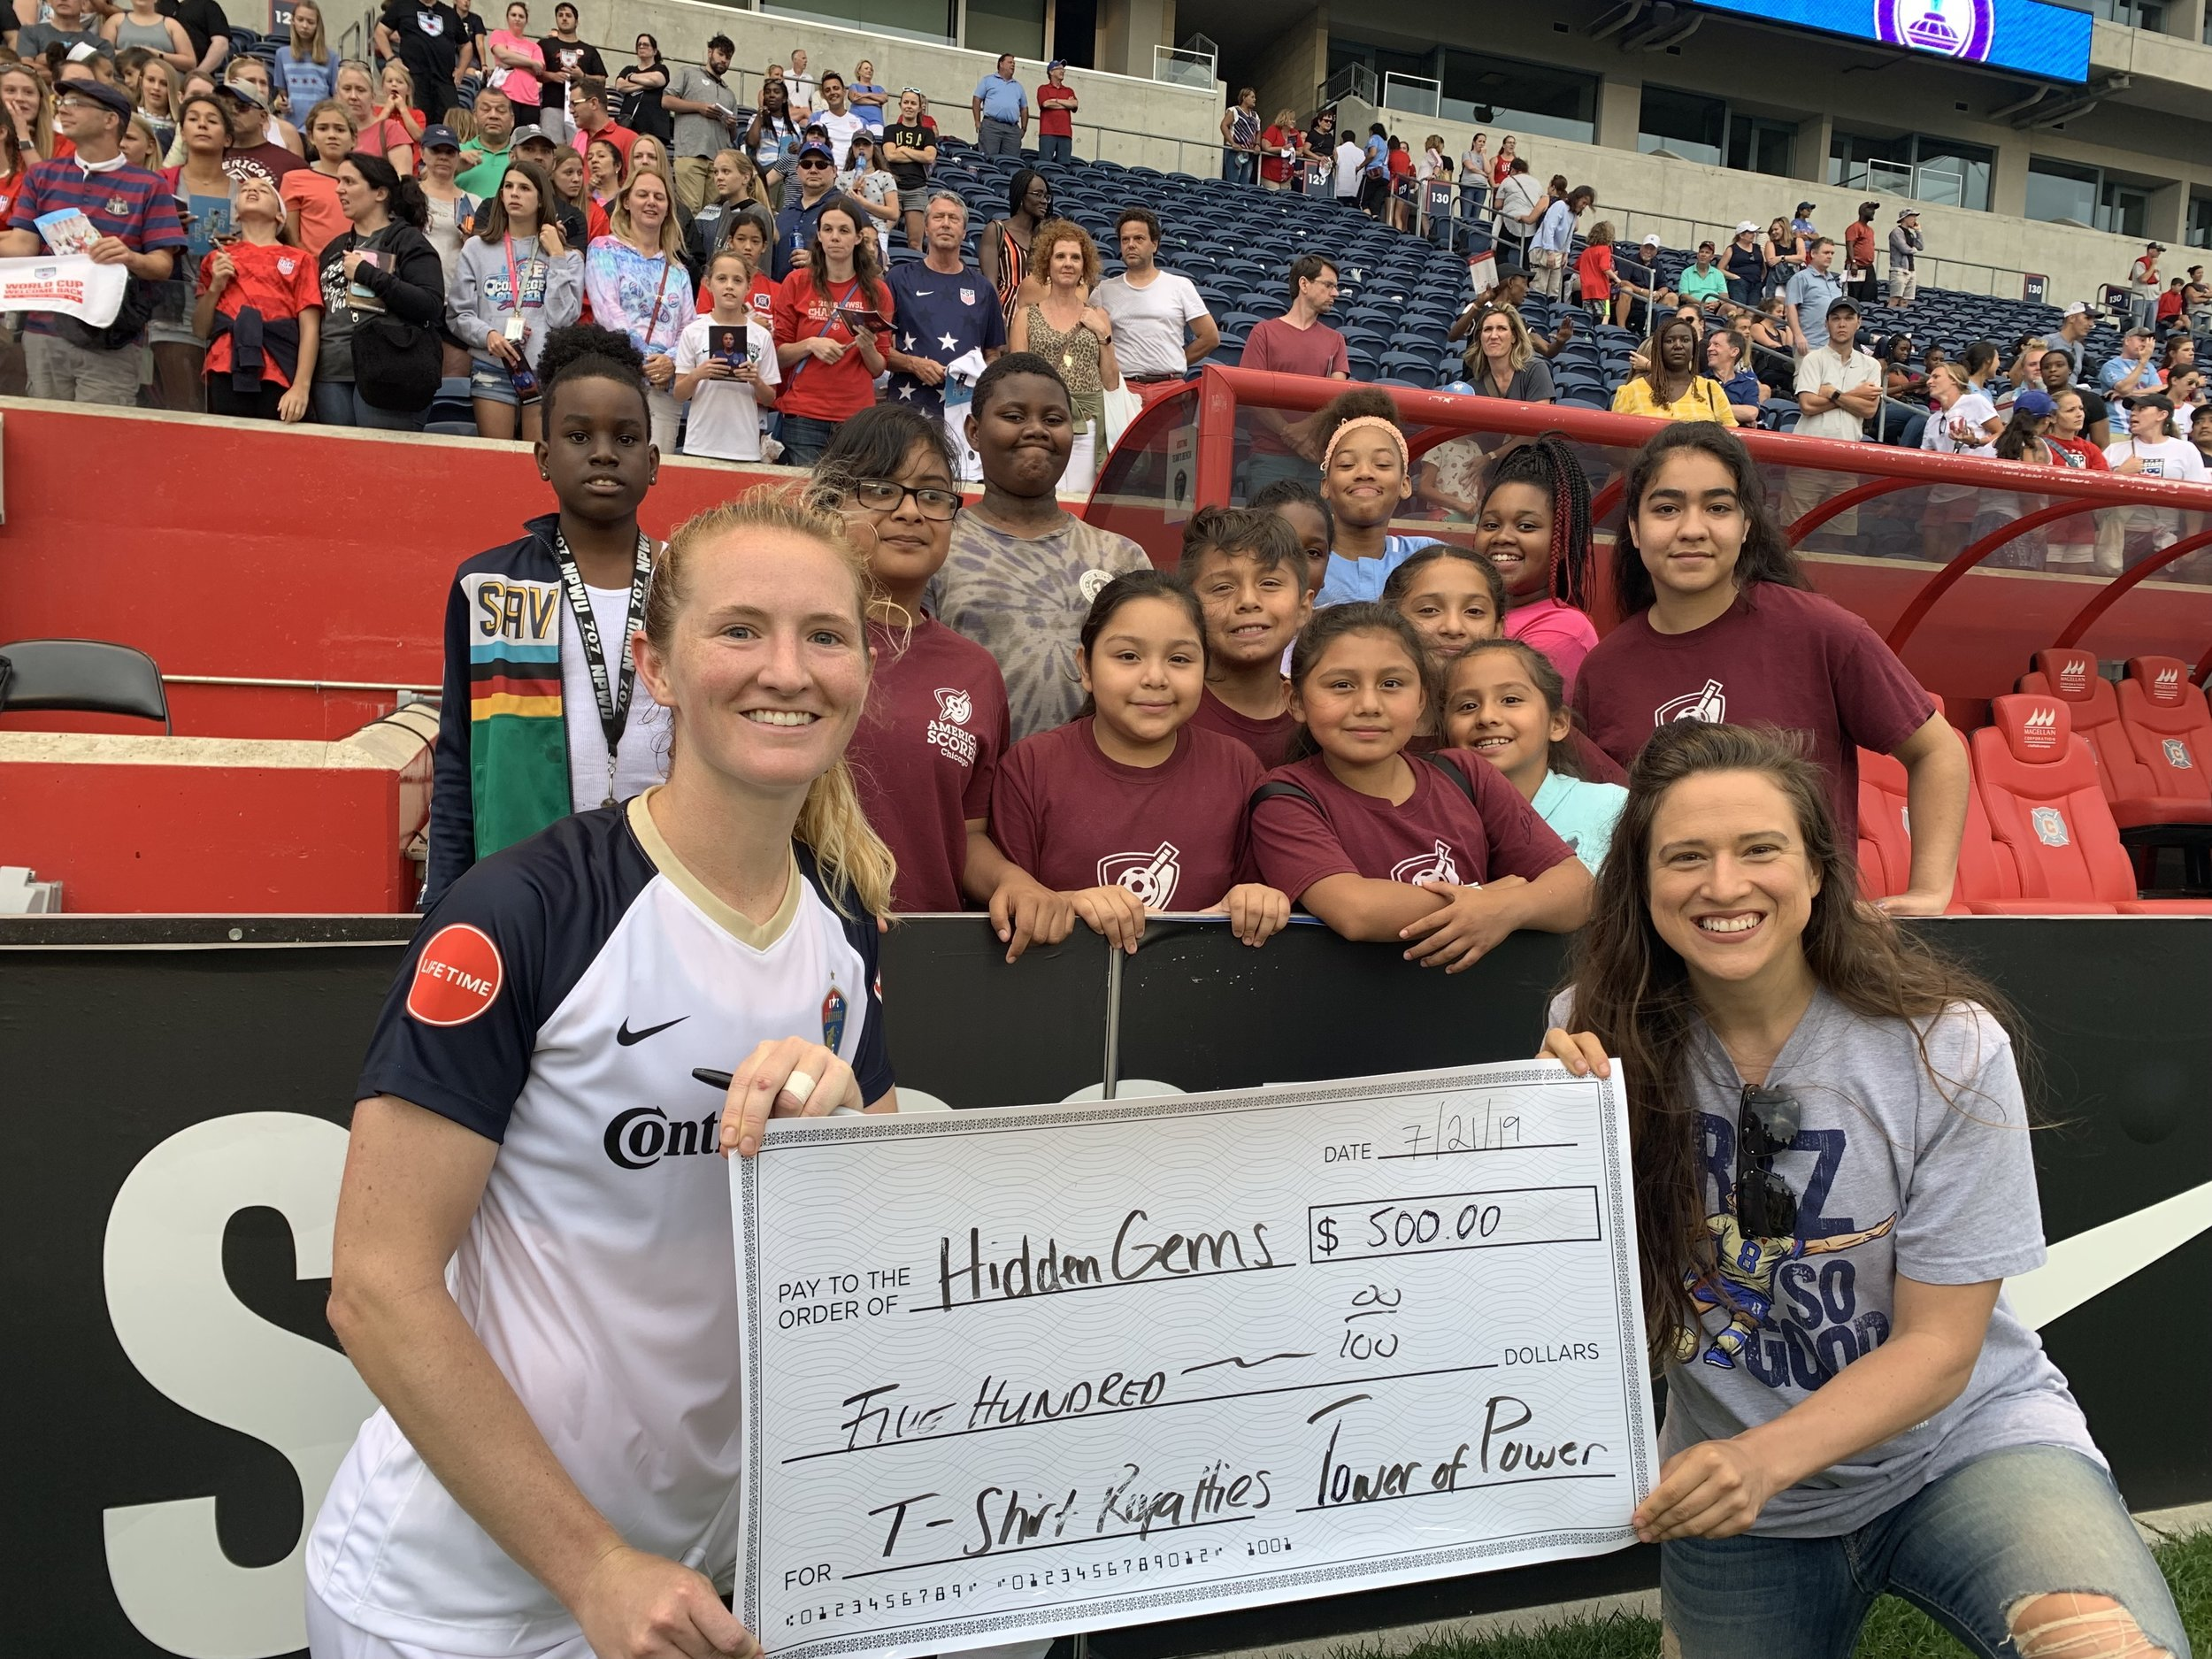 World Cup Champion Sam Mewis presents a check for her $500 donation